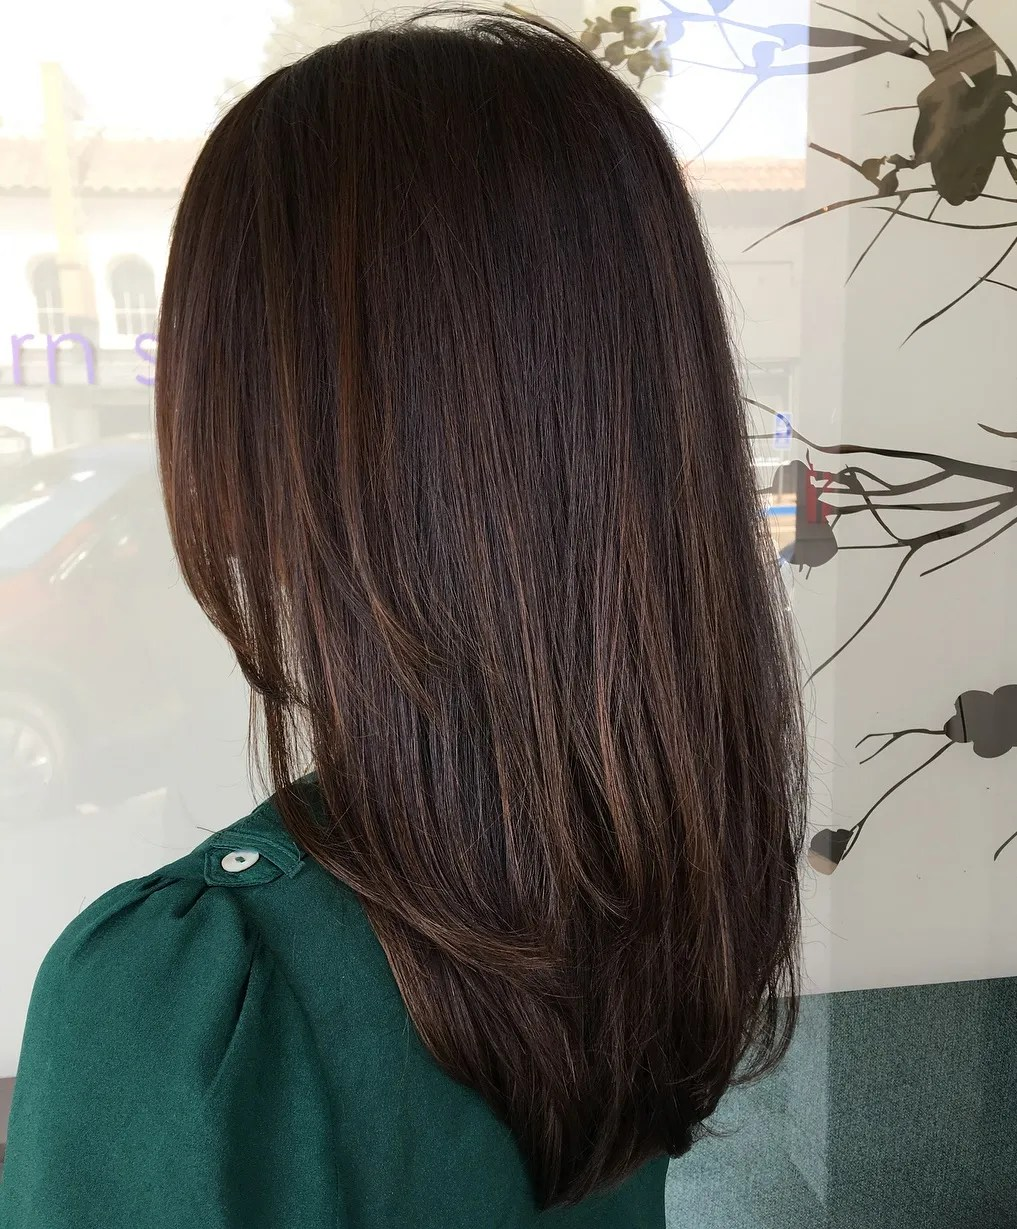 Straight Dark Brown Highlighted Hairstyle